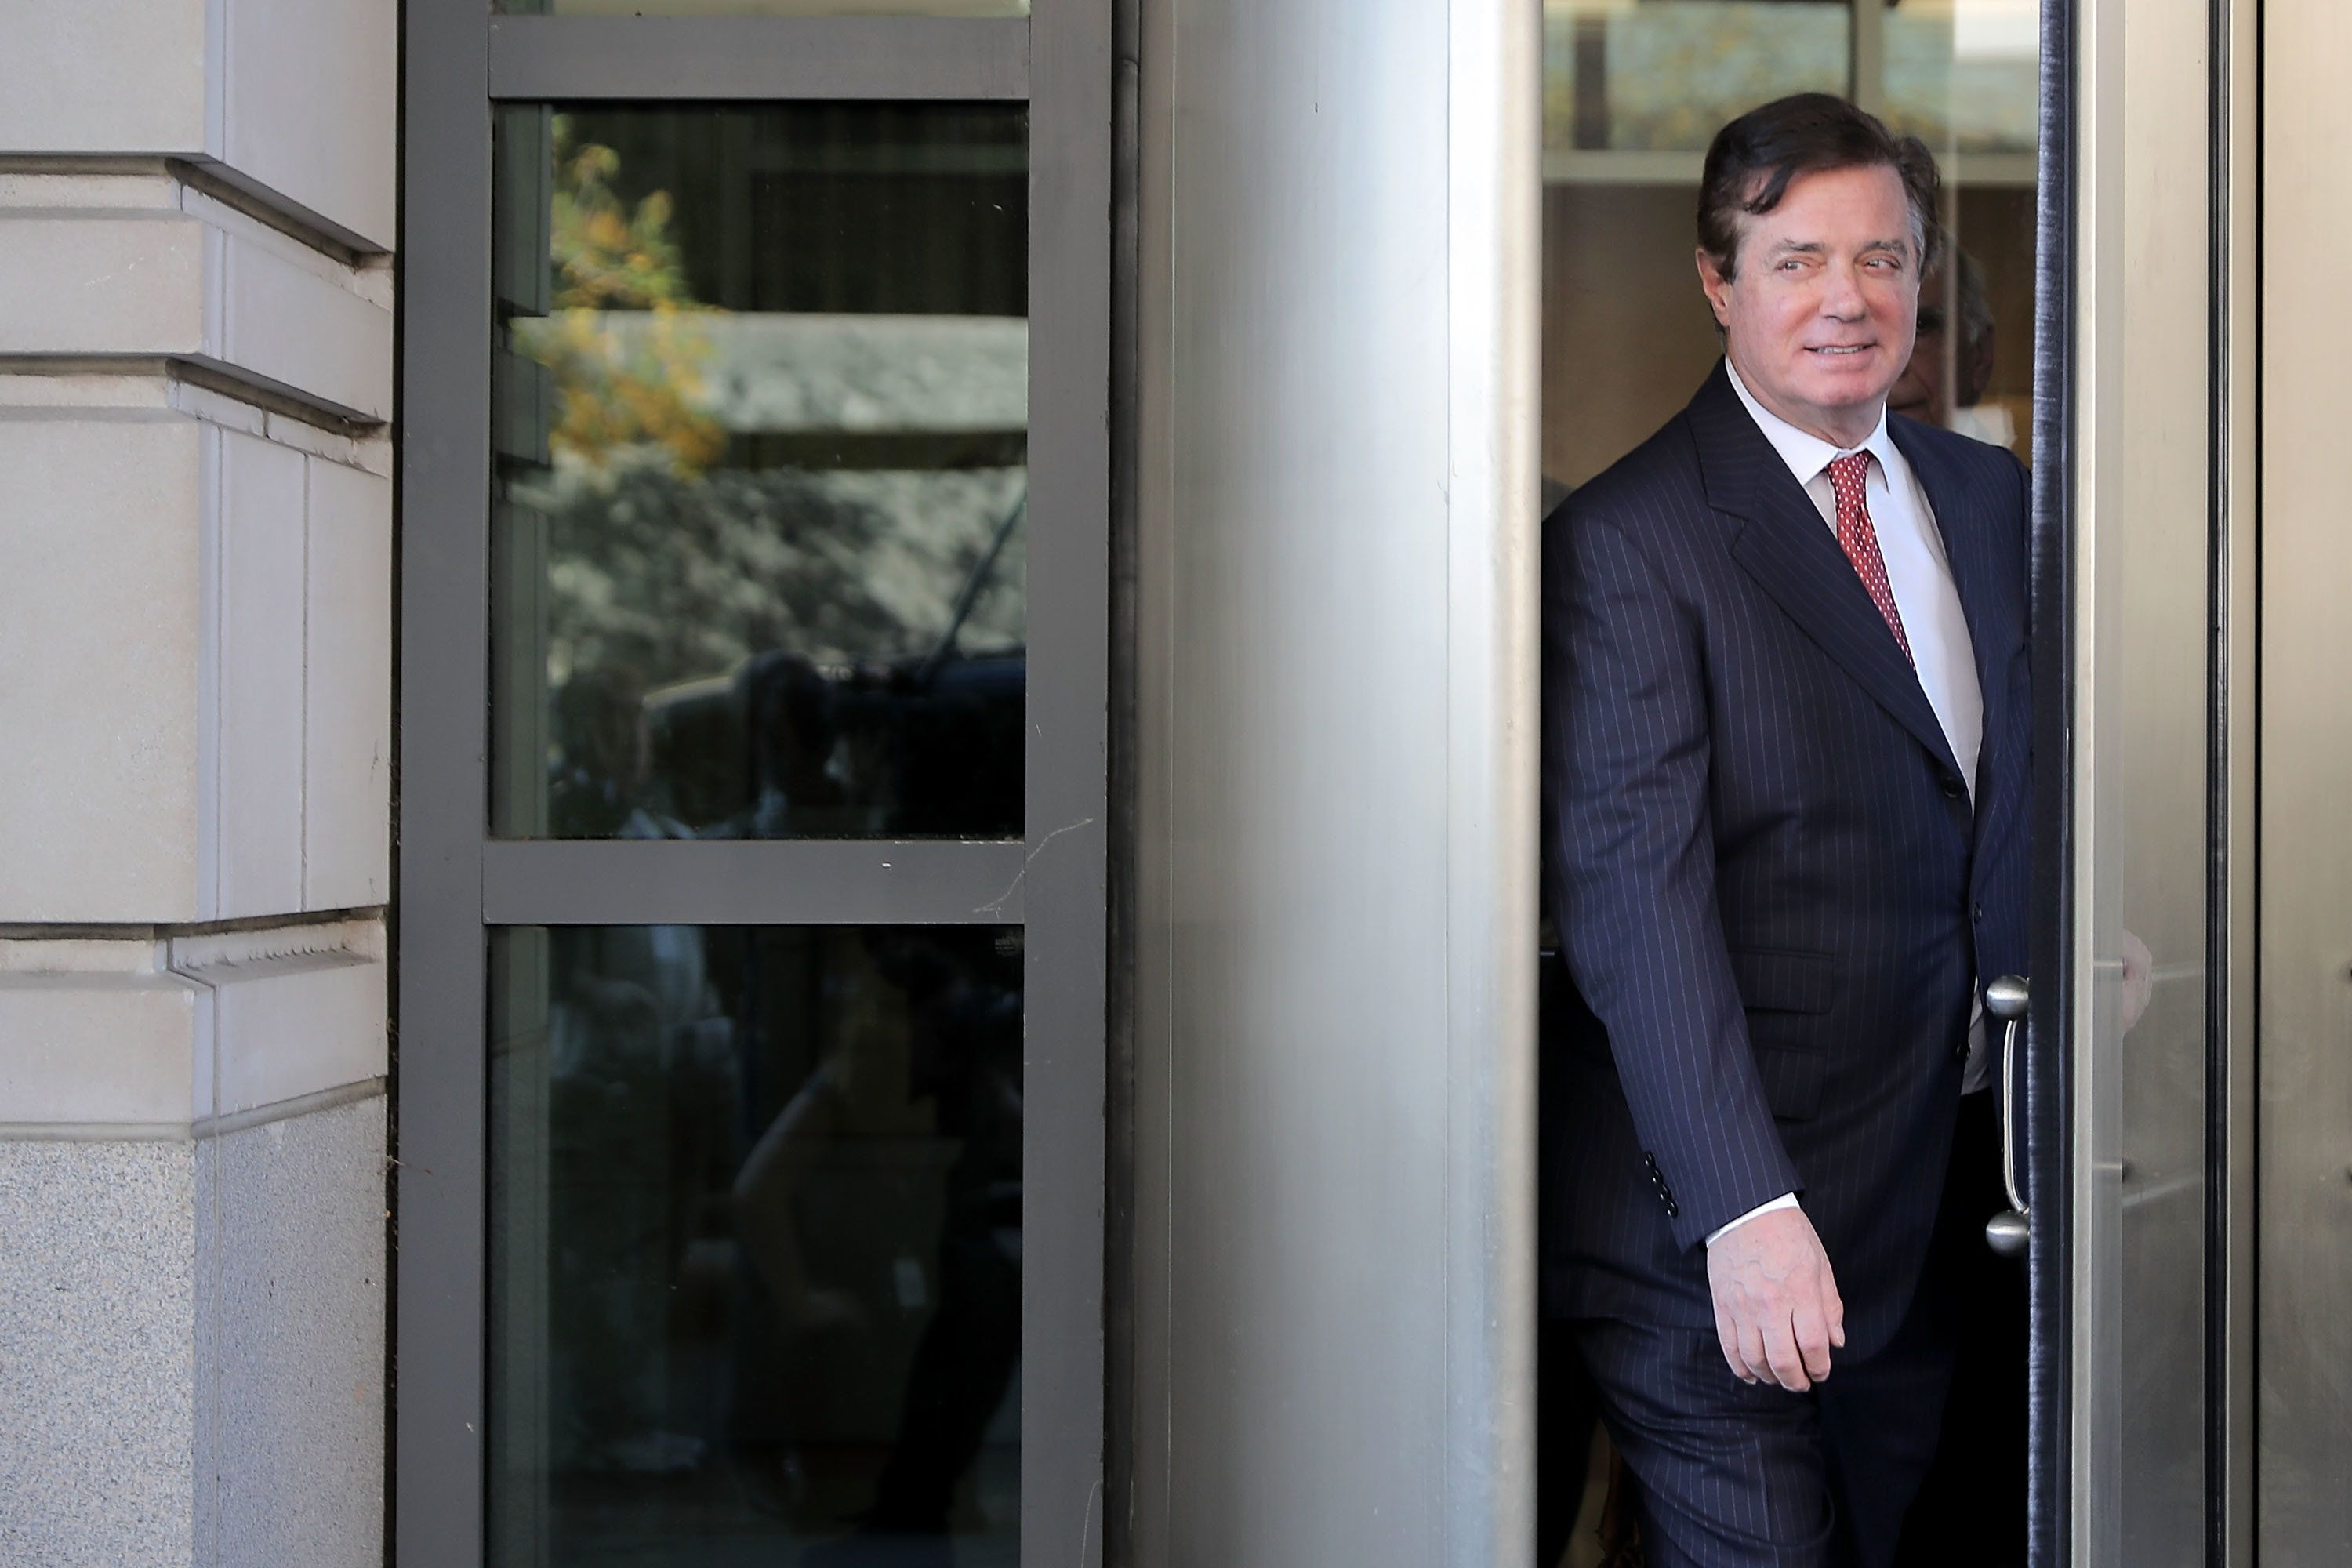 Paul Manafort walks out of a federal courthouse in Washington after a Nov. 2 hearing.